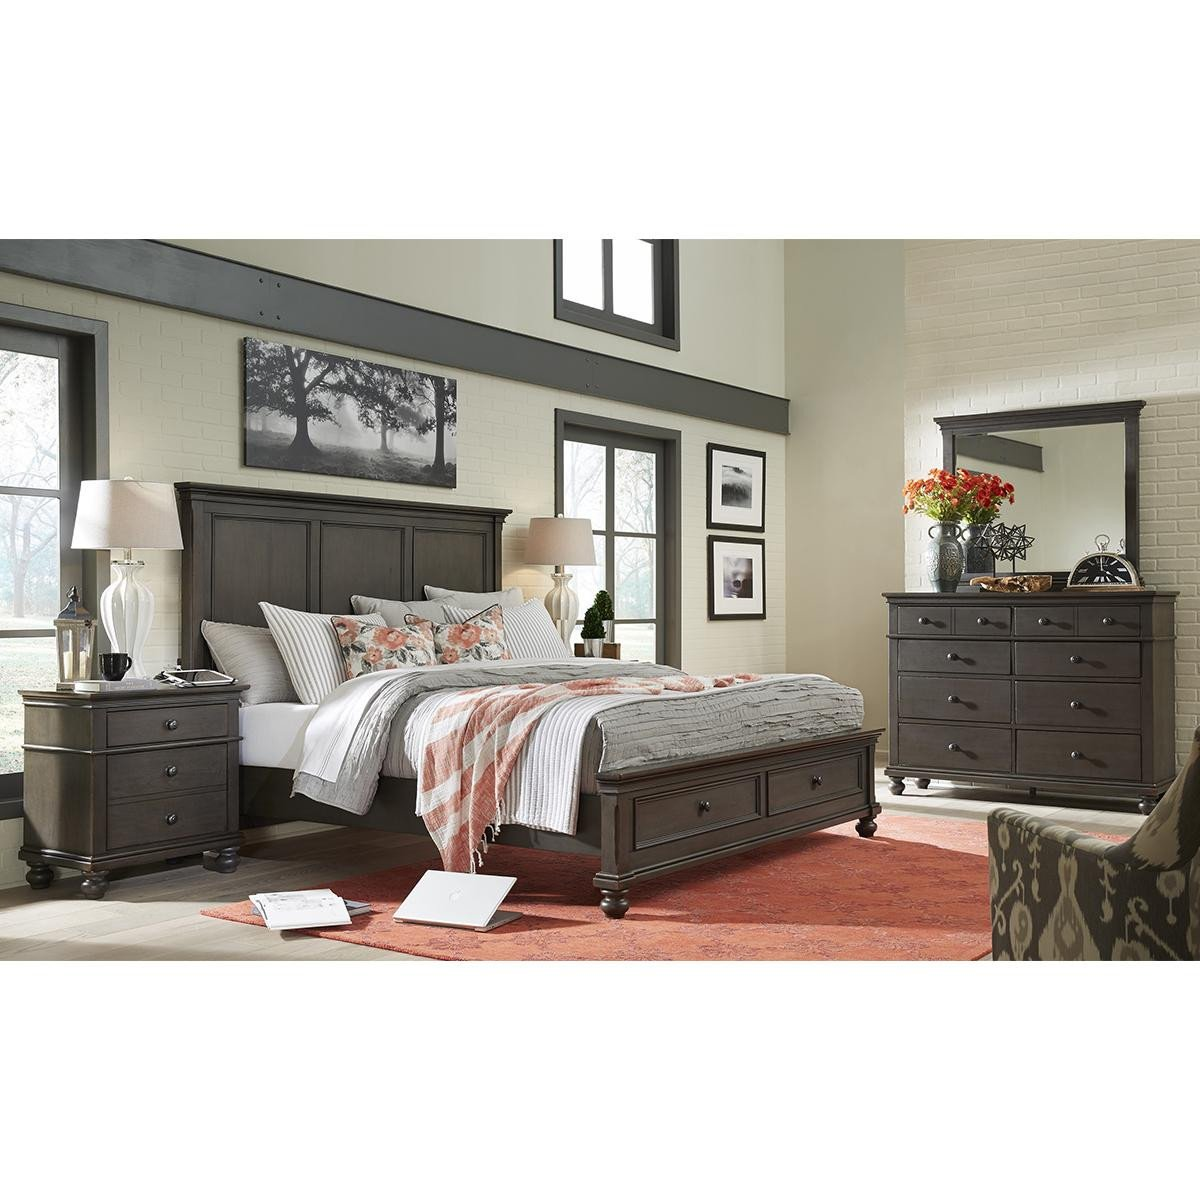 Twin Xl Bedroom Set Elegant Riva Ridge Oxford 4 Piece Queen Bedroom Set In Peppercorn